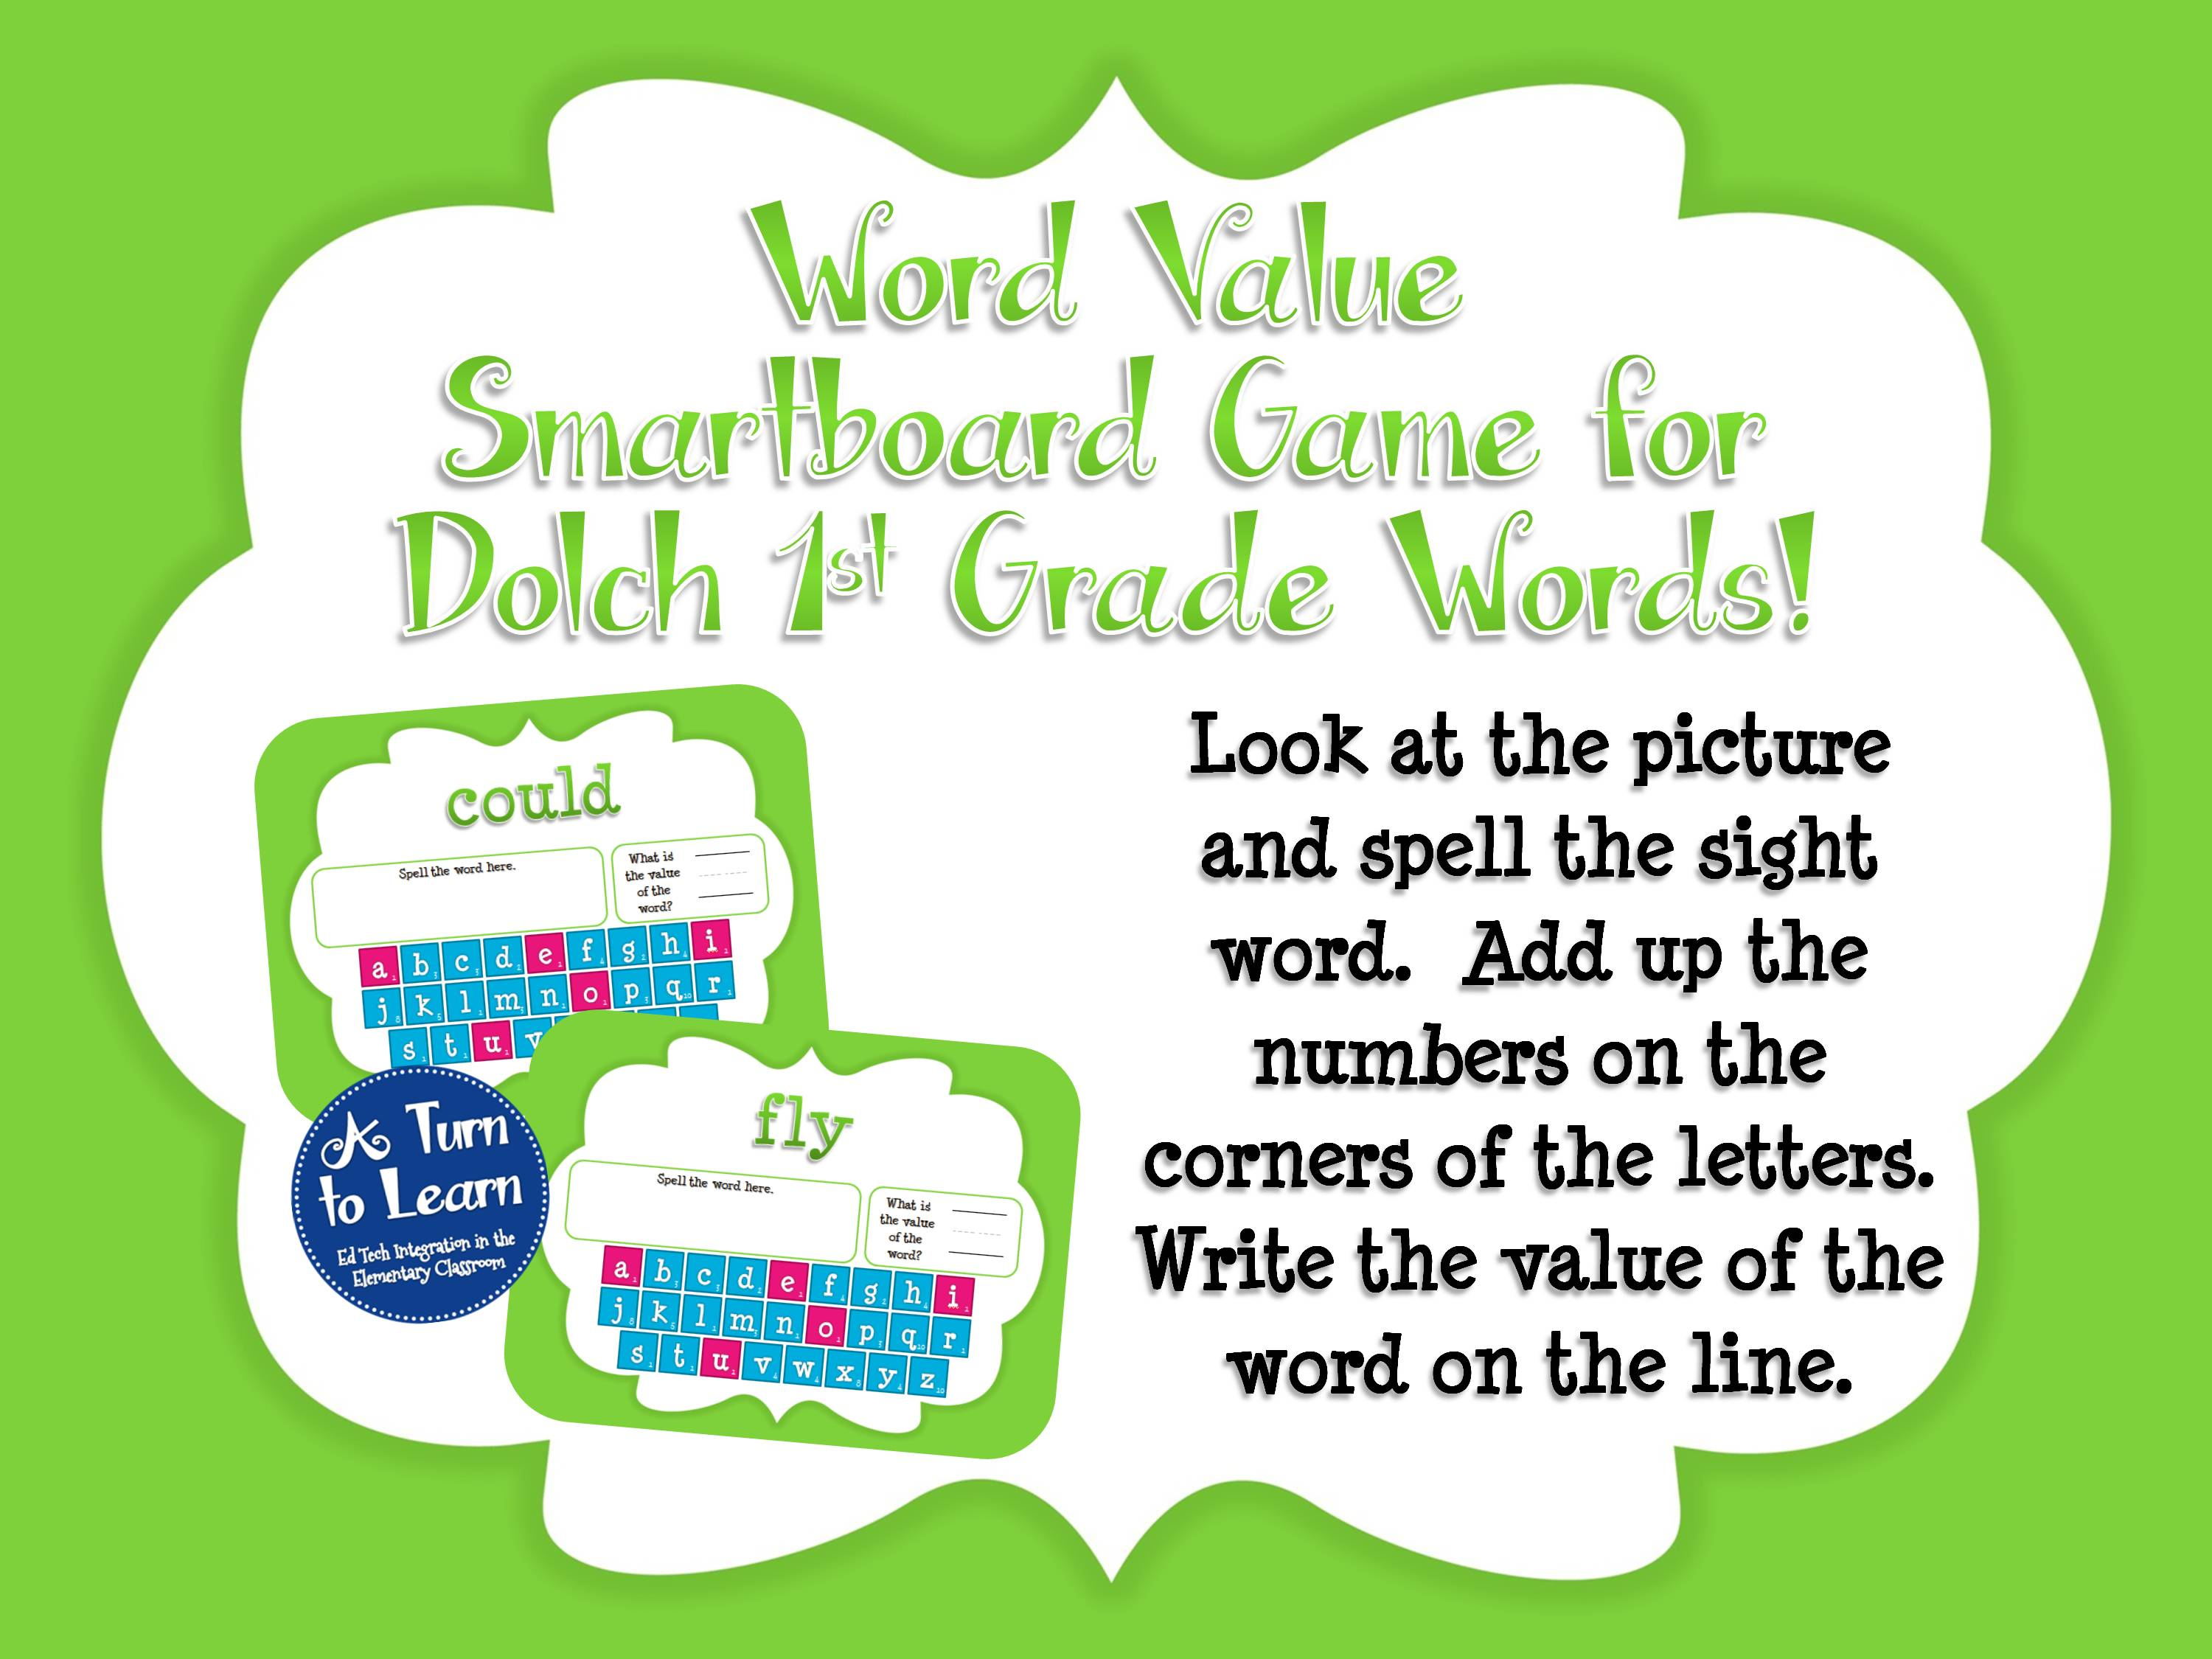 Sight Word Smartboard Games: Dolch Word Value, 1st Grade